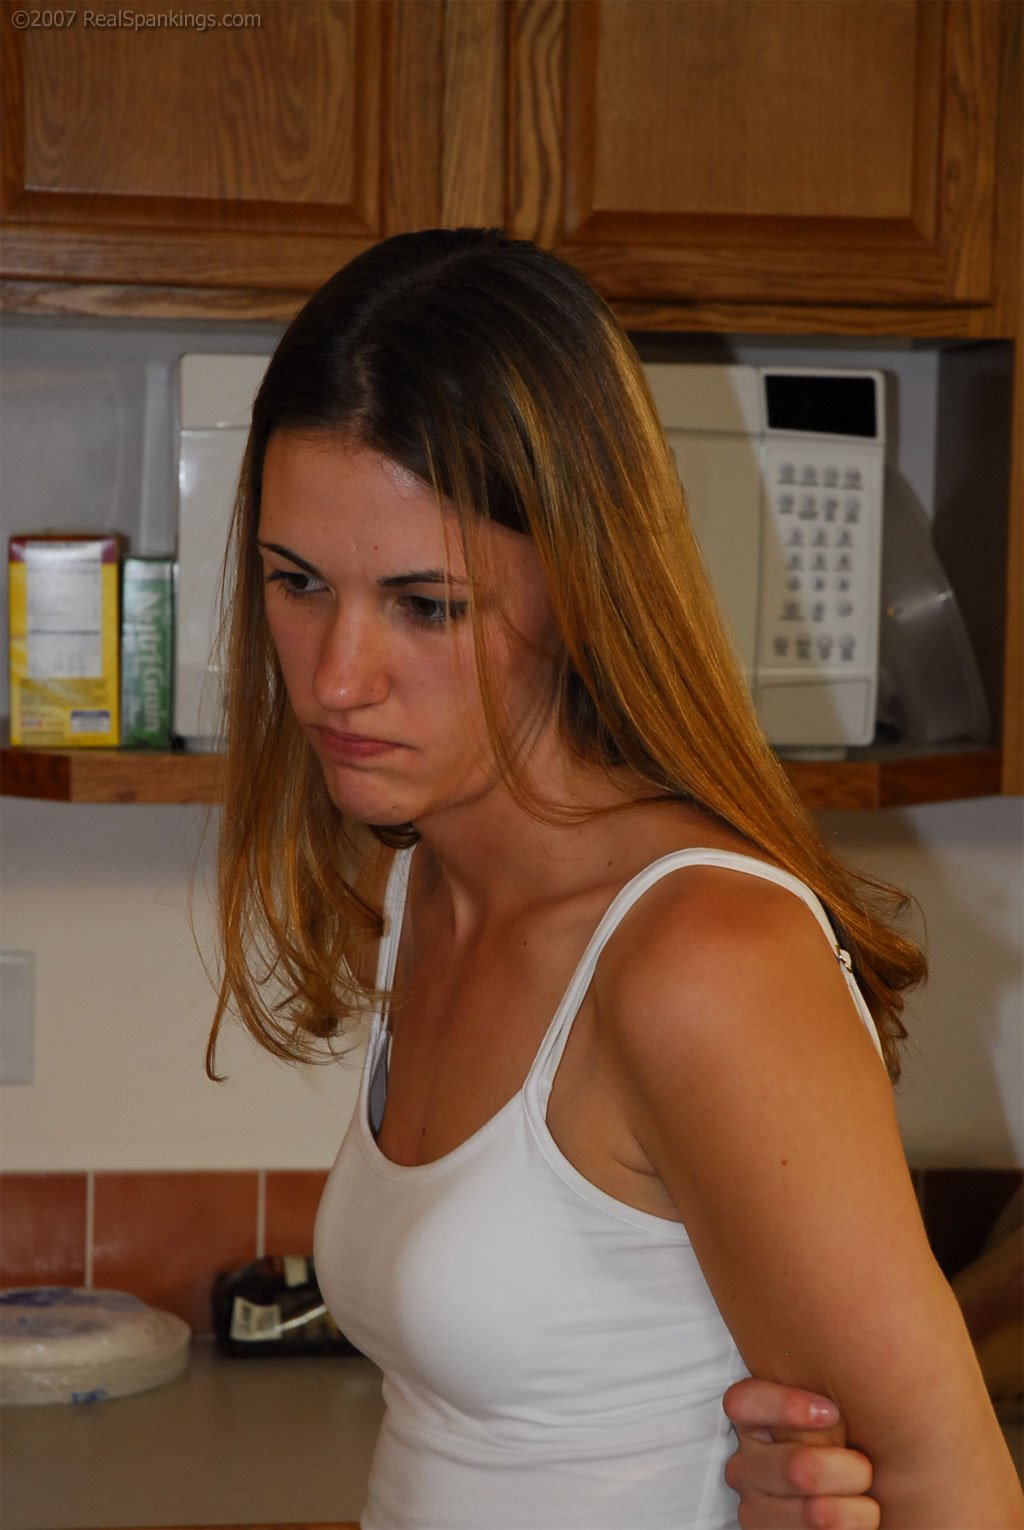 Real Spankings - Monica Is Spanked Hard By Mr. M In The